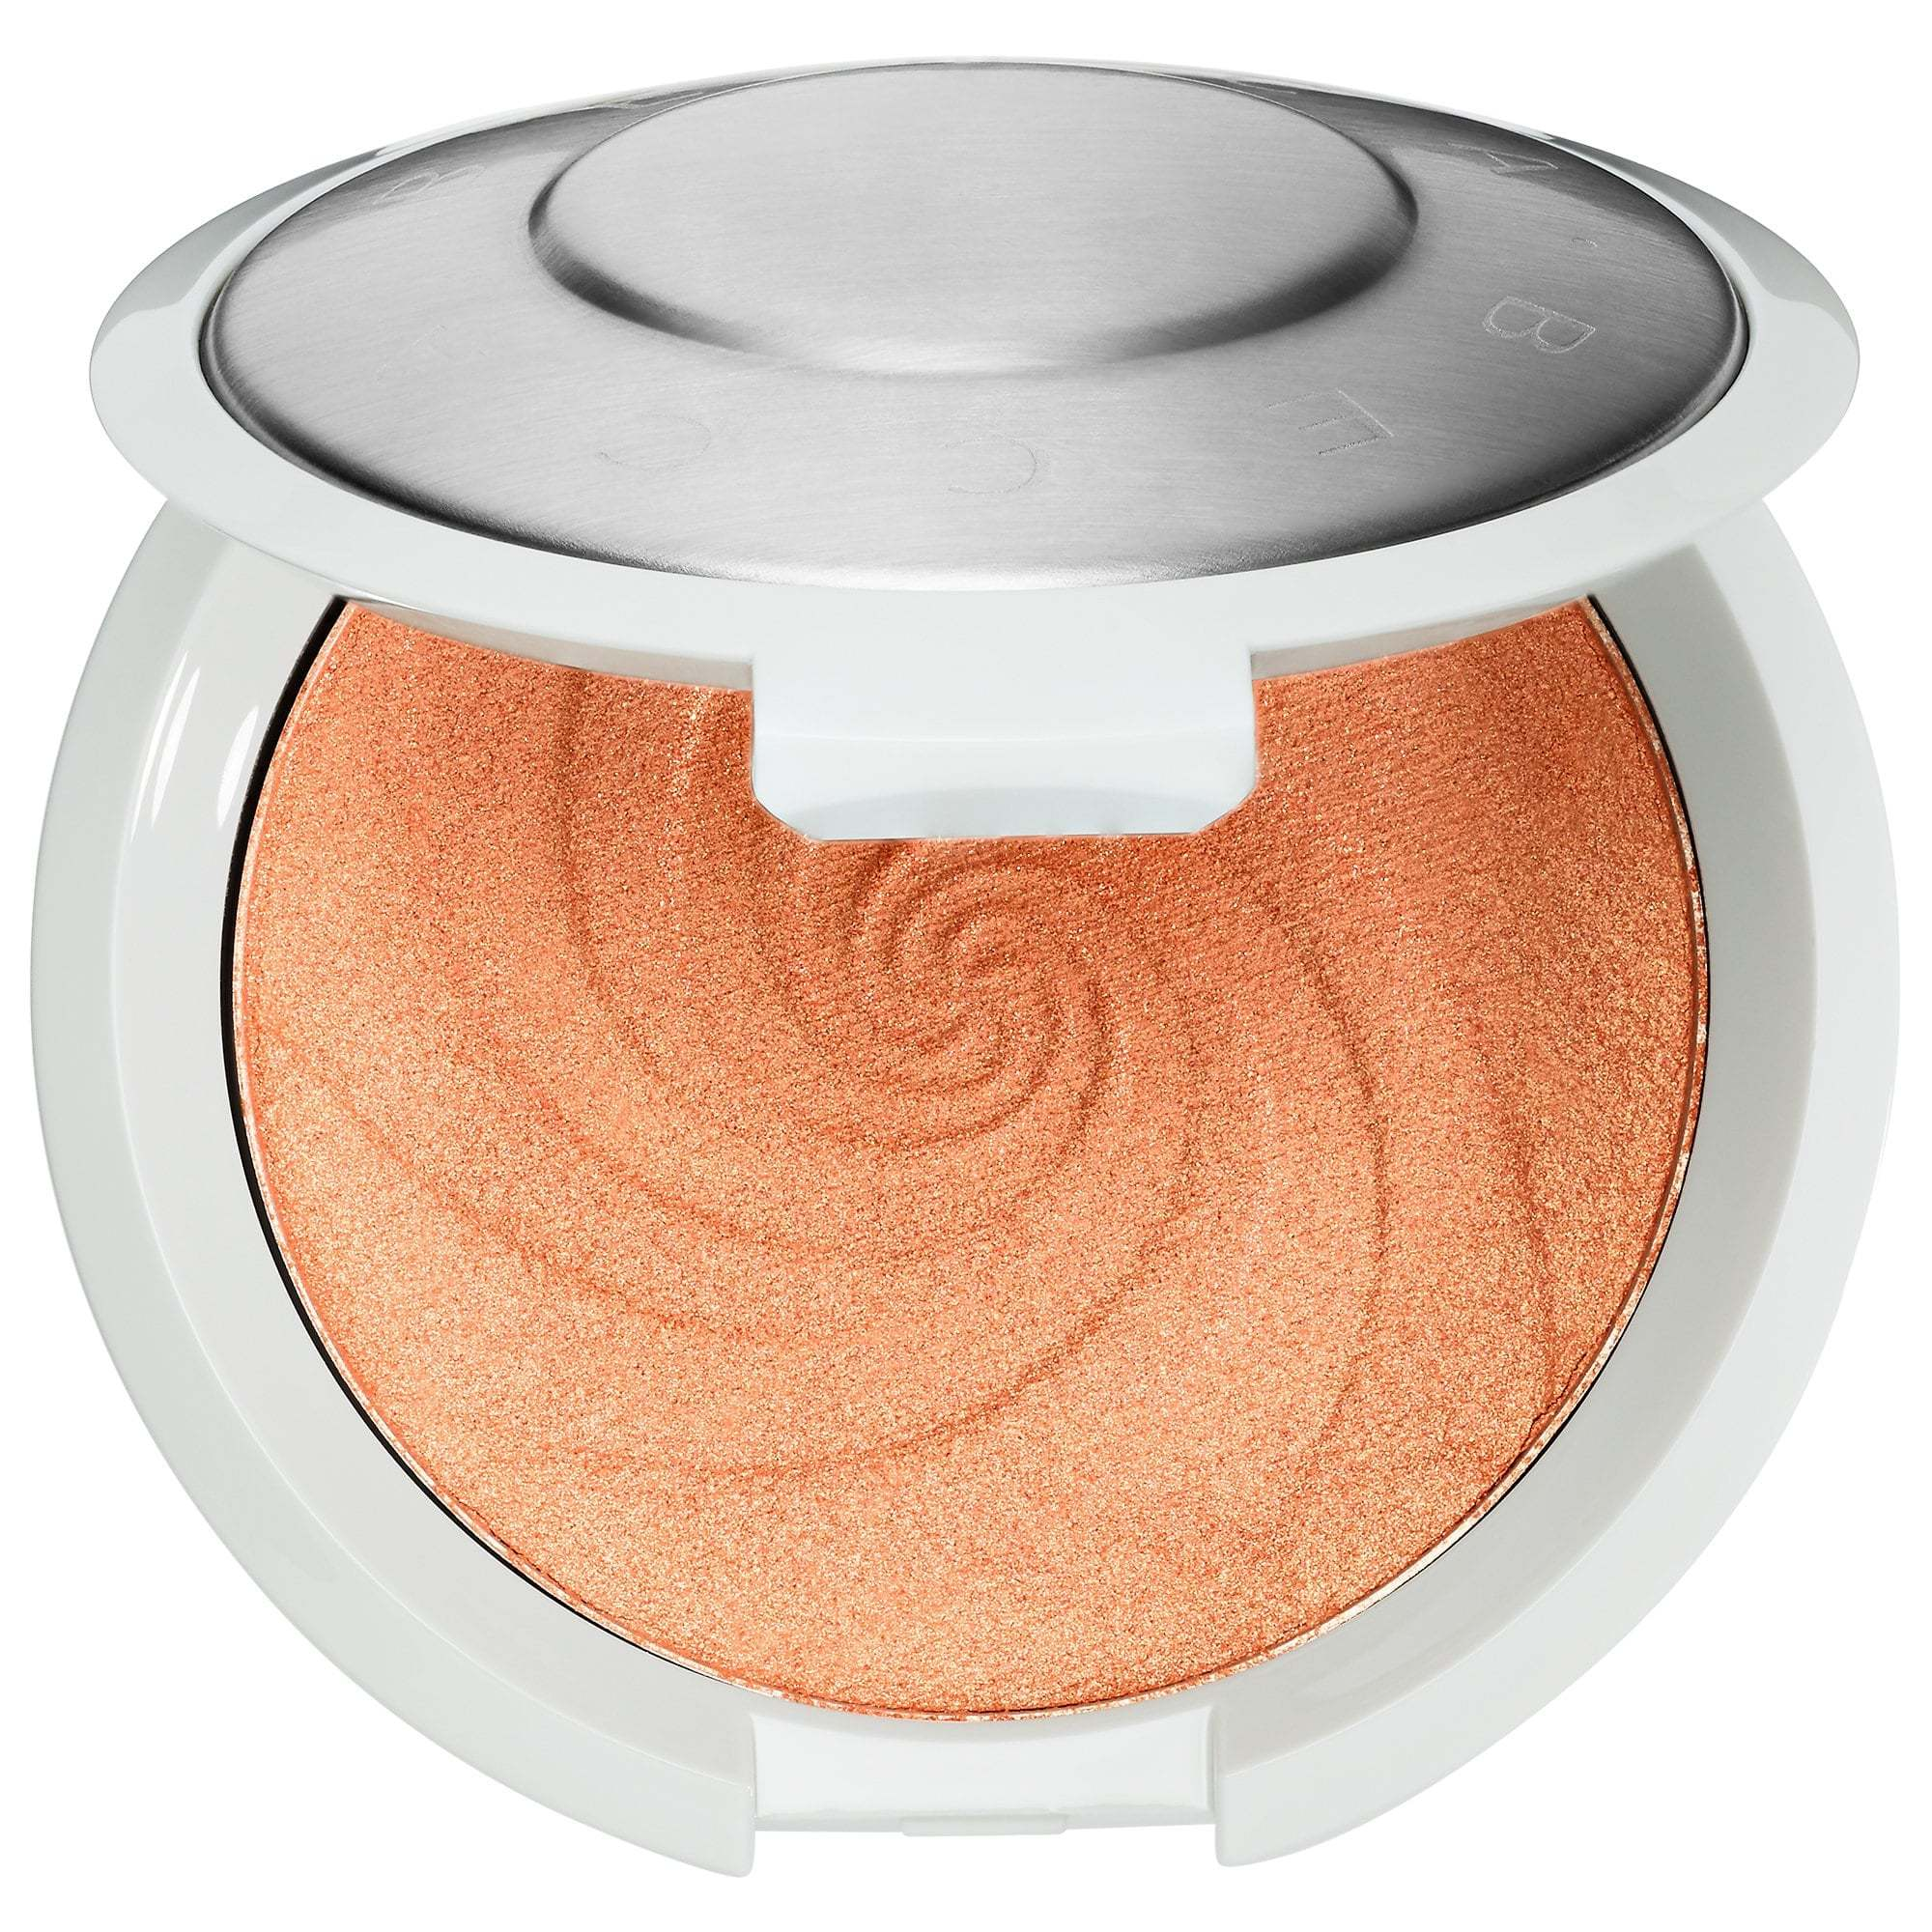 BECCA Shimmering Skin Perfector Dreamsicle